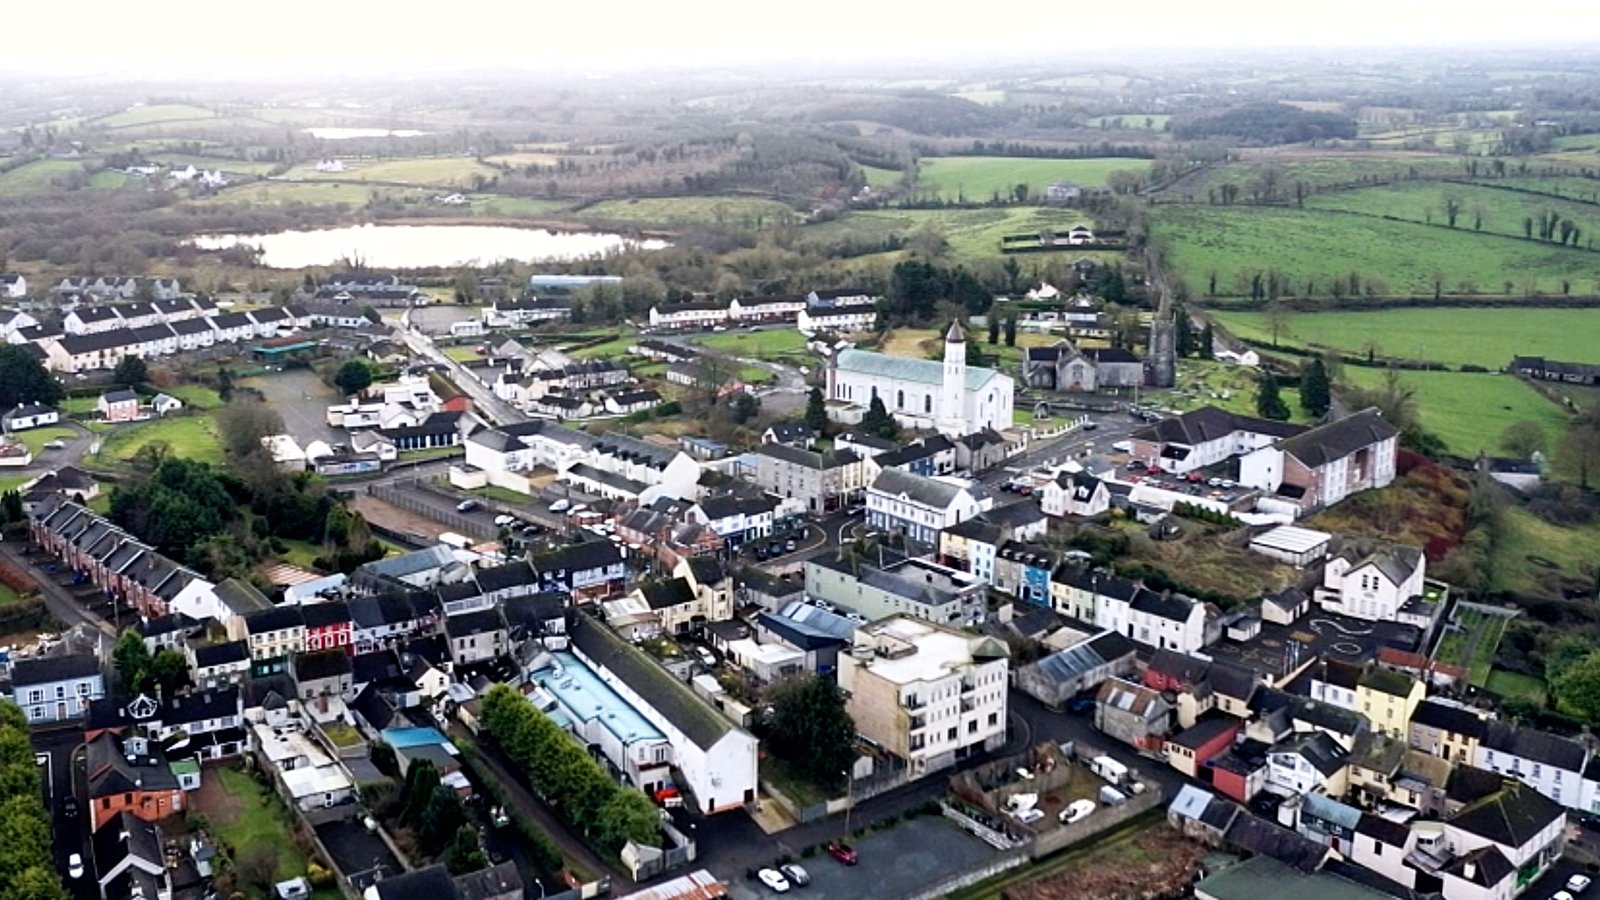 Image - Belturbet is located just south of the border with Northern Ireland